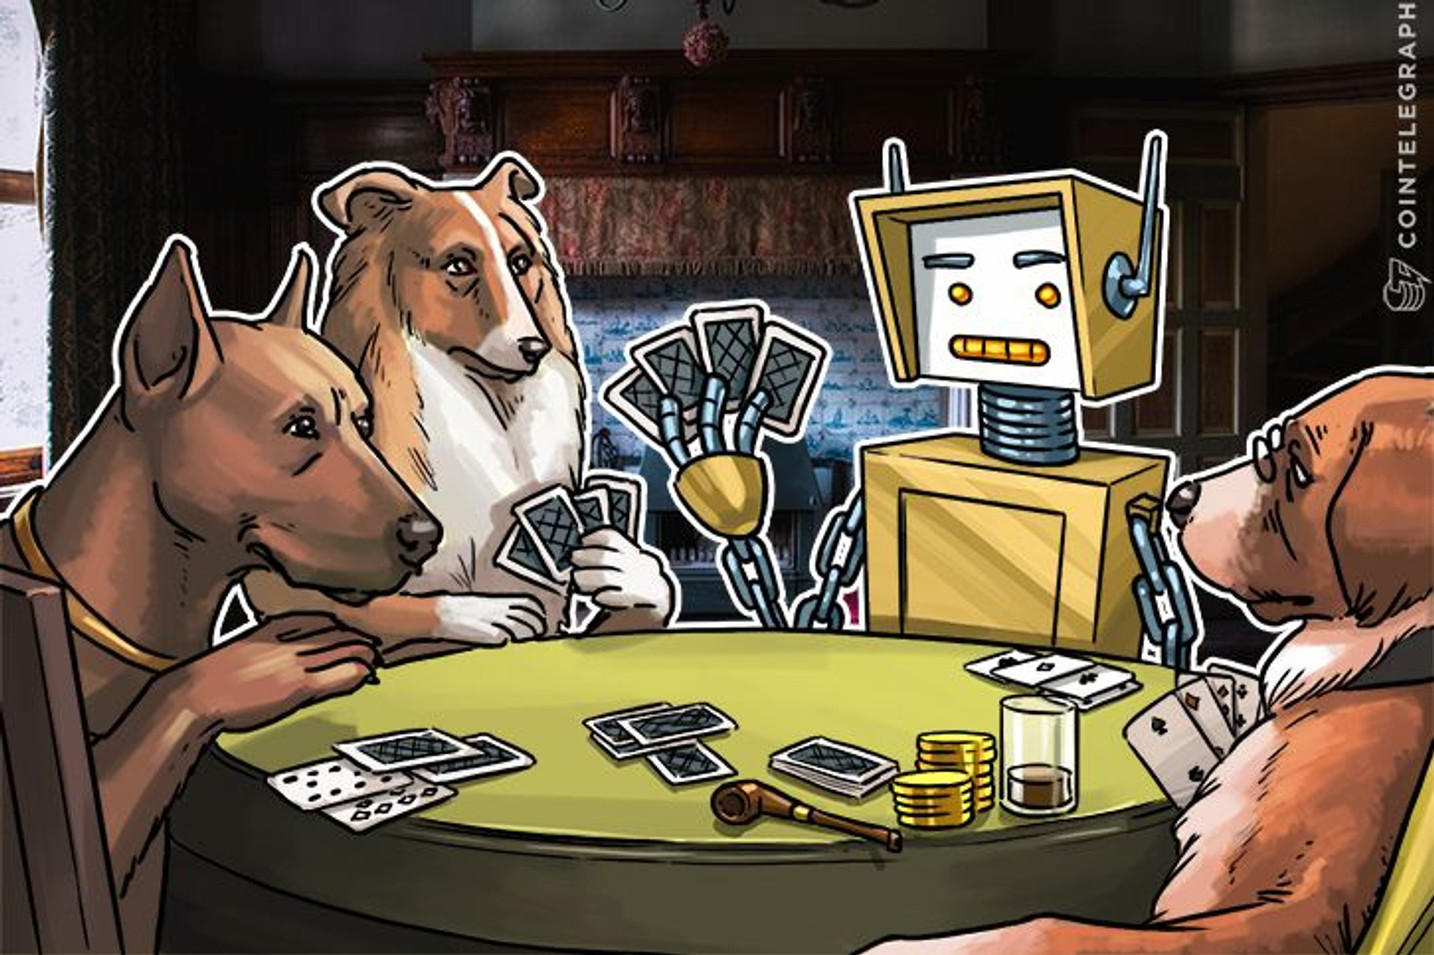 Blockchain: Best Thing For Gaming Since Invention of Internet